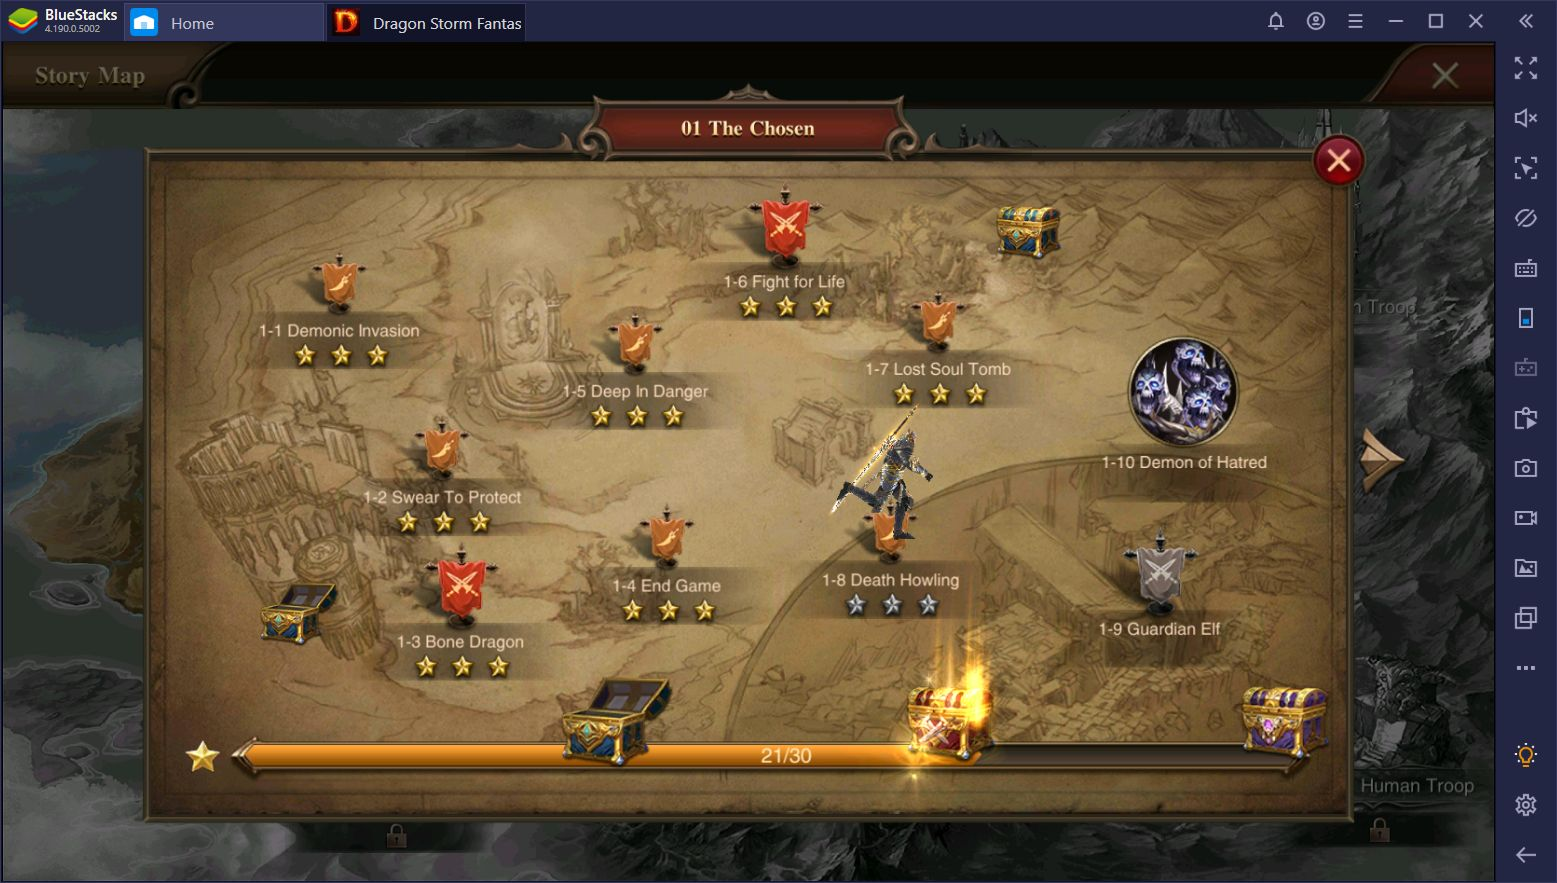 Dragon Storm Fantasy Gold Farming – Using BlueStacks to Generate Gold Automatically